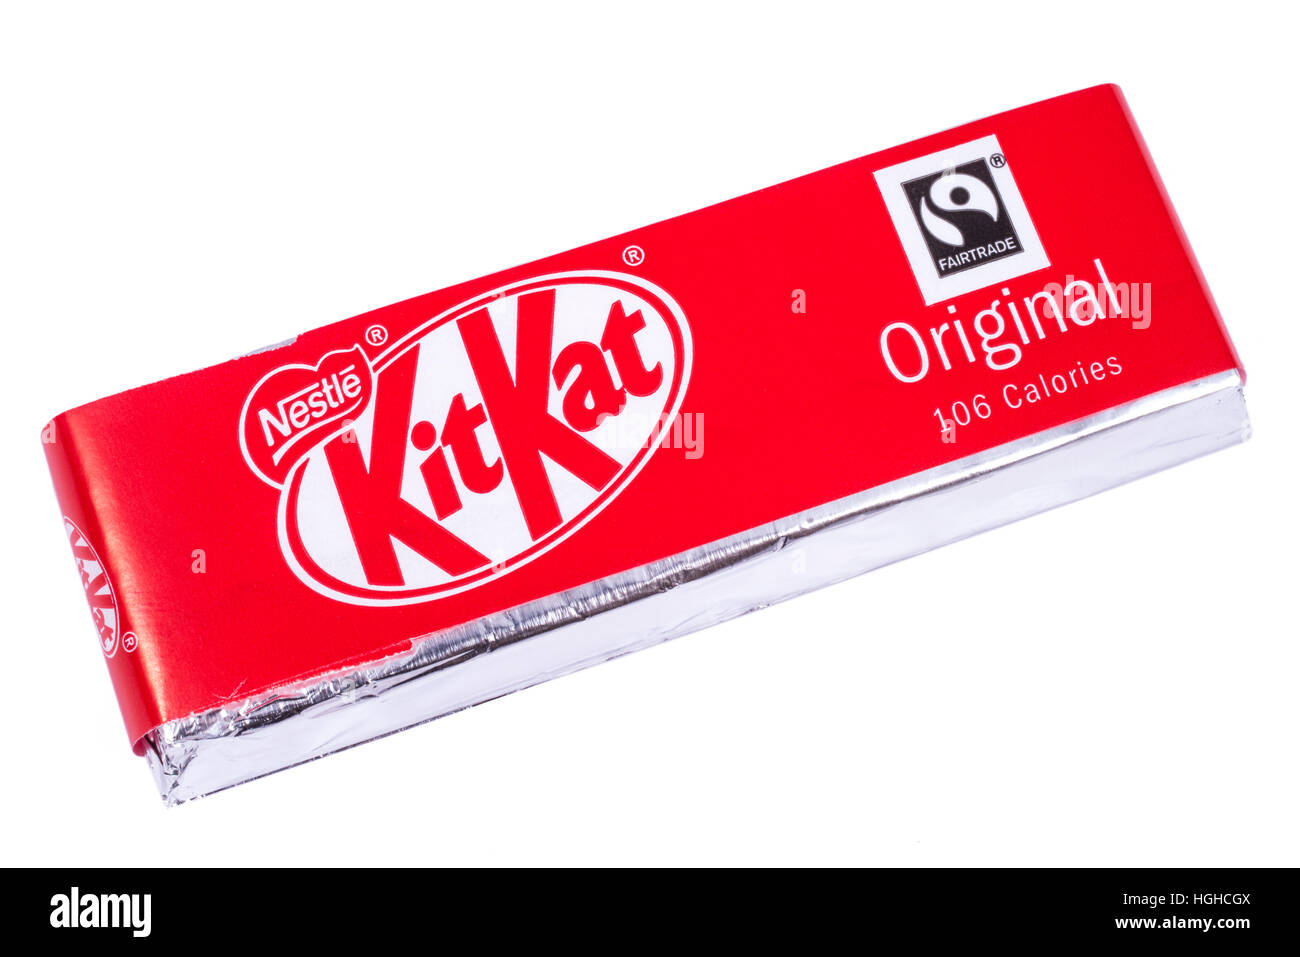 LONDON, UK - JANUARY 4TH 2017: An unopened Kit Kat chocolate bar manufactured by Nestle, pictured over a plain white - Stock Image